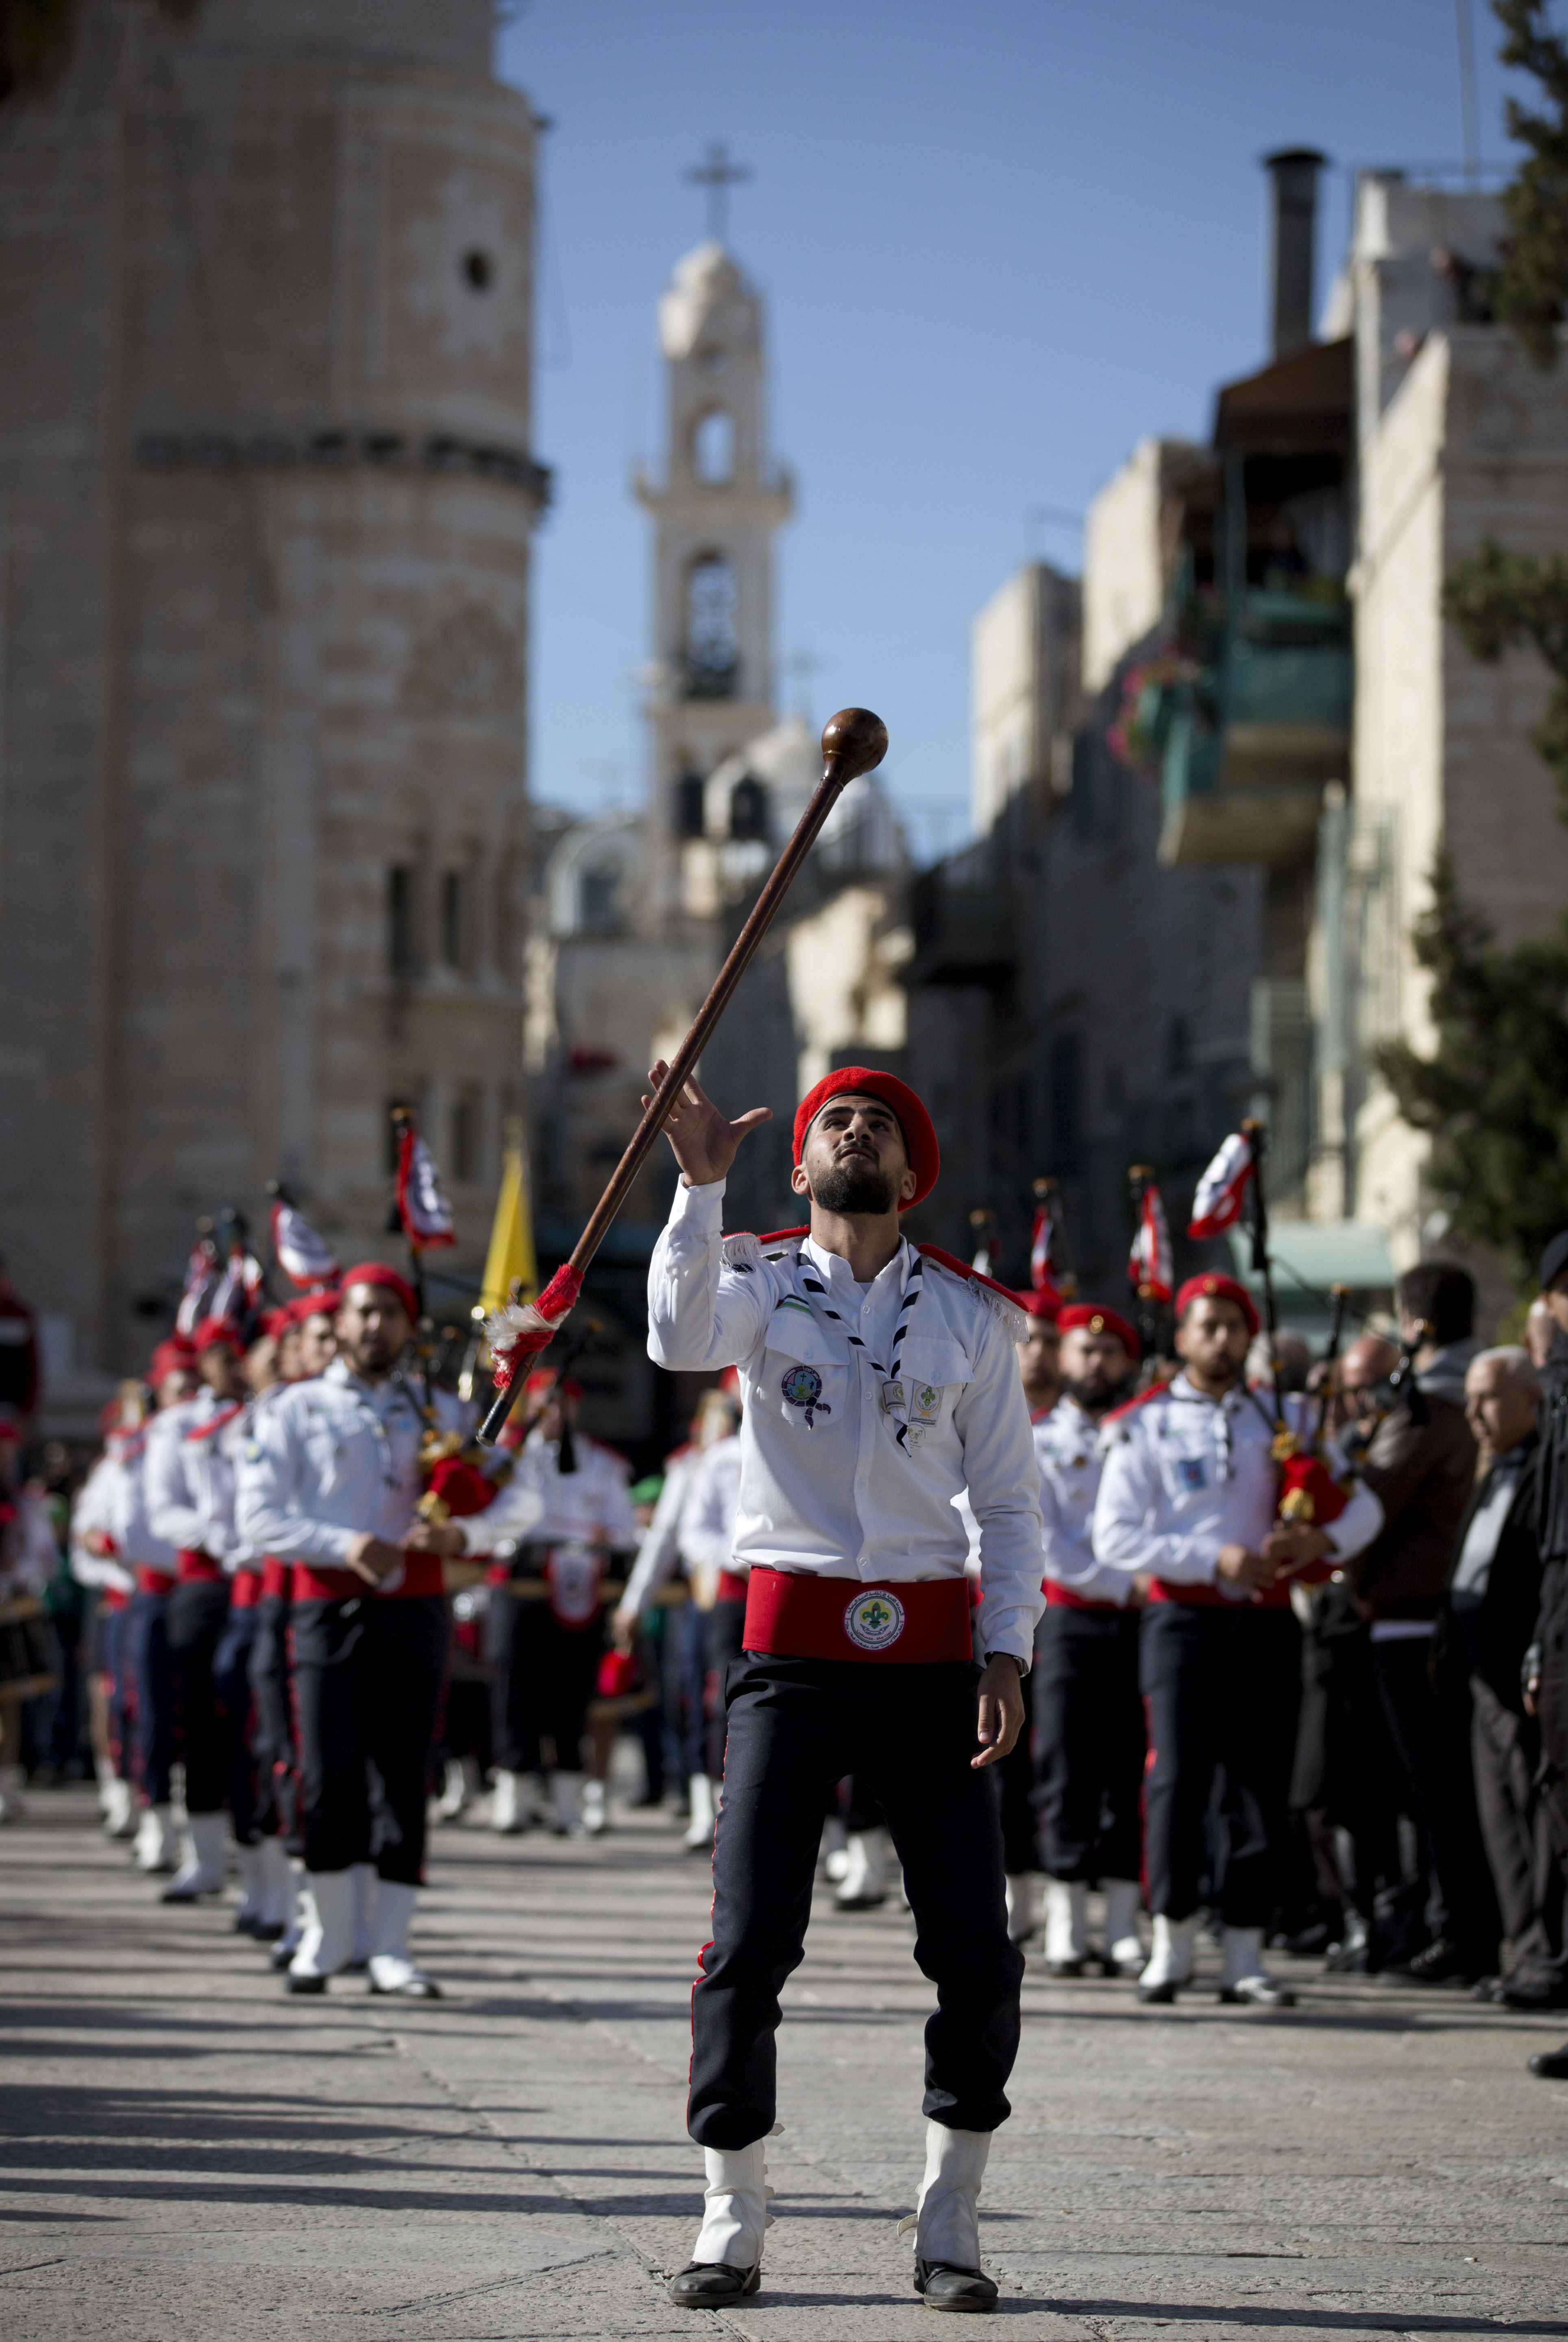 A Palestinian Scout marching band parade during Christmas celebrations outside the Church of the Nativity, built atop the site where Christians believe Jesus Christ was born, on Christmas Eve, in the West Bank City of Bethlehem, Tuesday, Dec. 24, 2019. (AP Photo/Majdi Mohammed)